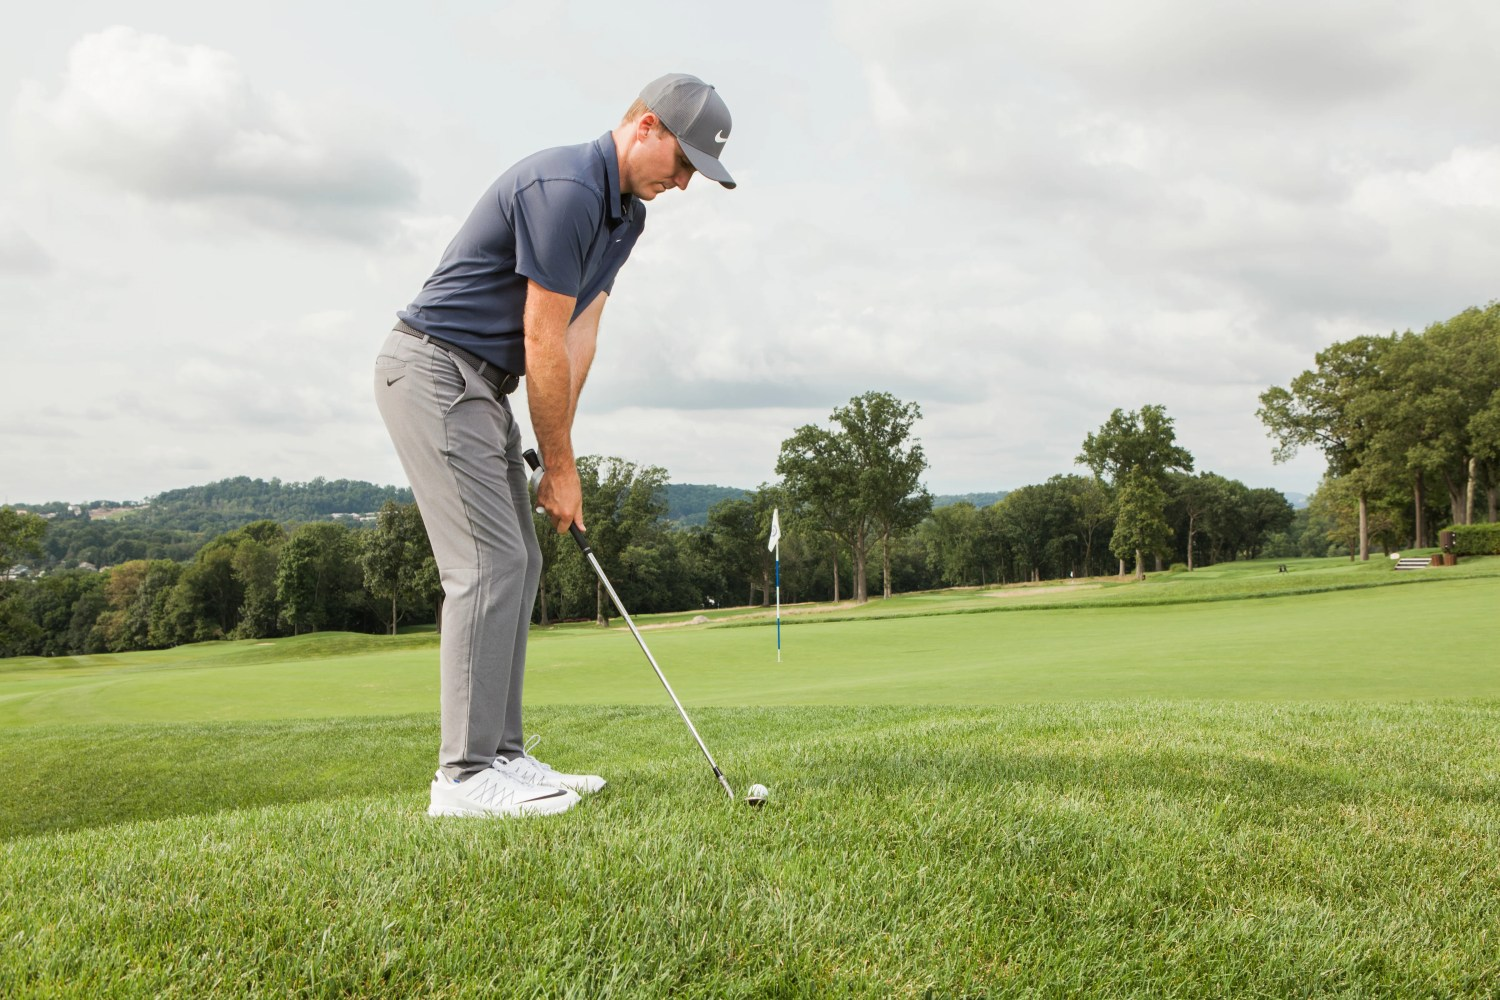 Russell Henley Awkward wedge tip Titleist photo shoot day 1 Montclair Golf Club, Montclair, New Jersey, USA 8/20/18 GF-144 TK1 Credit: Patrick James Miller